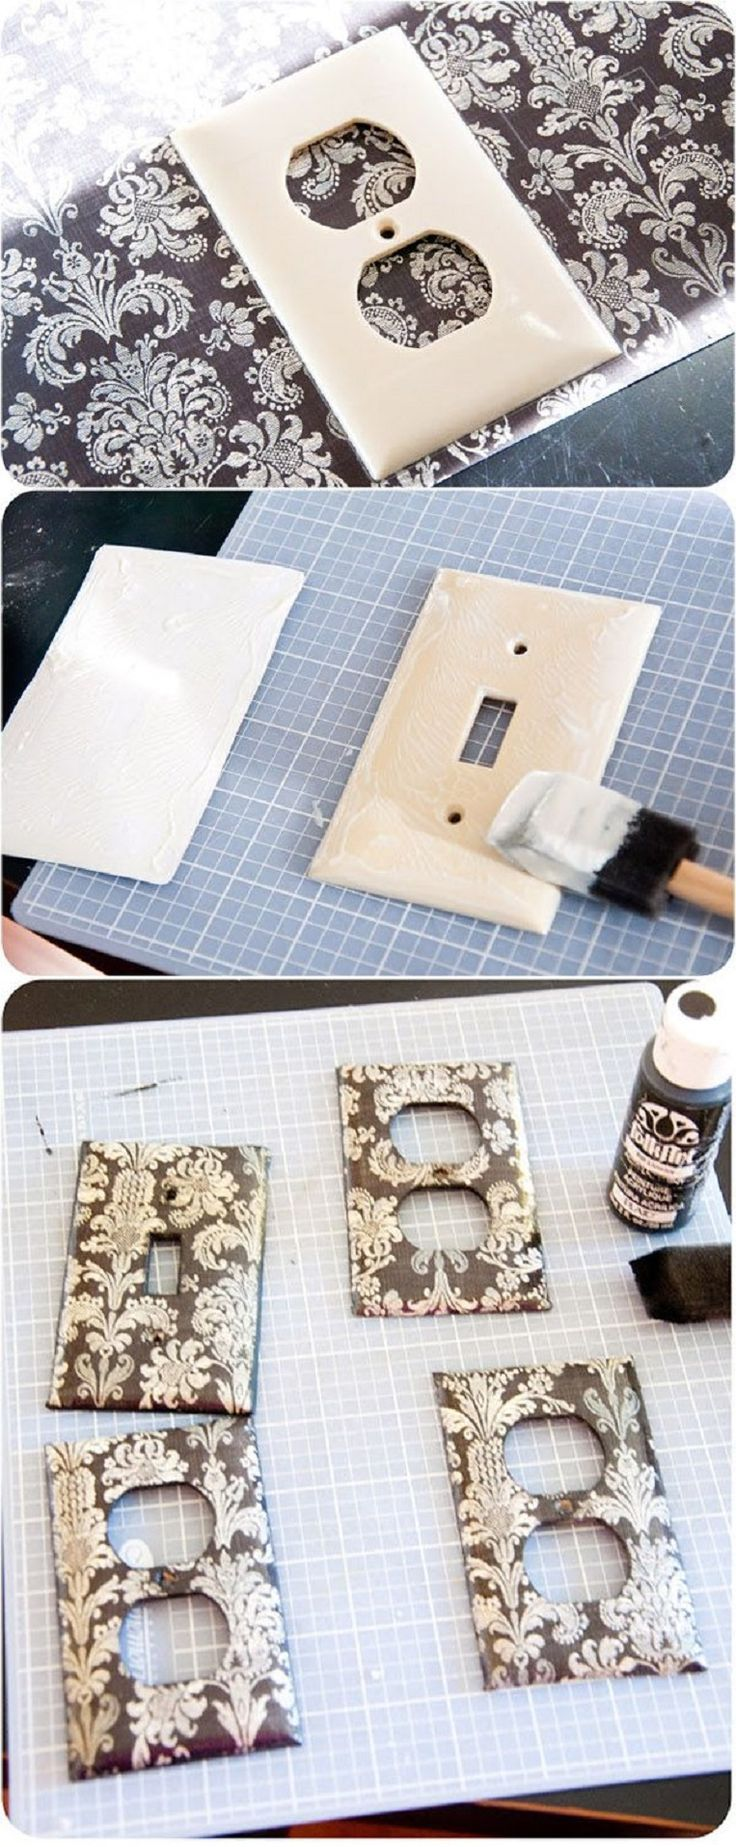 16 DIY Decor Crafts for Your Home | GleamItUp DIY switch plate covers wrapped in scrapbook paper could really make a big impact with very little effort or expense